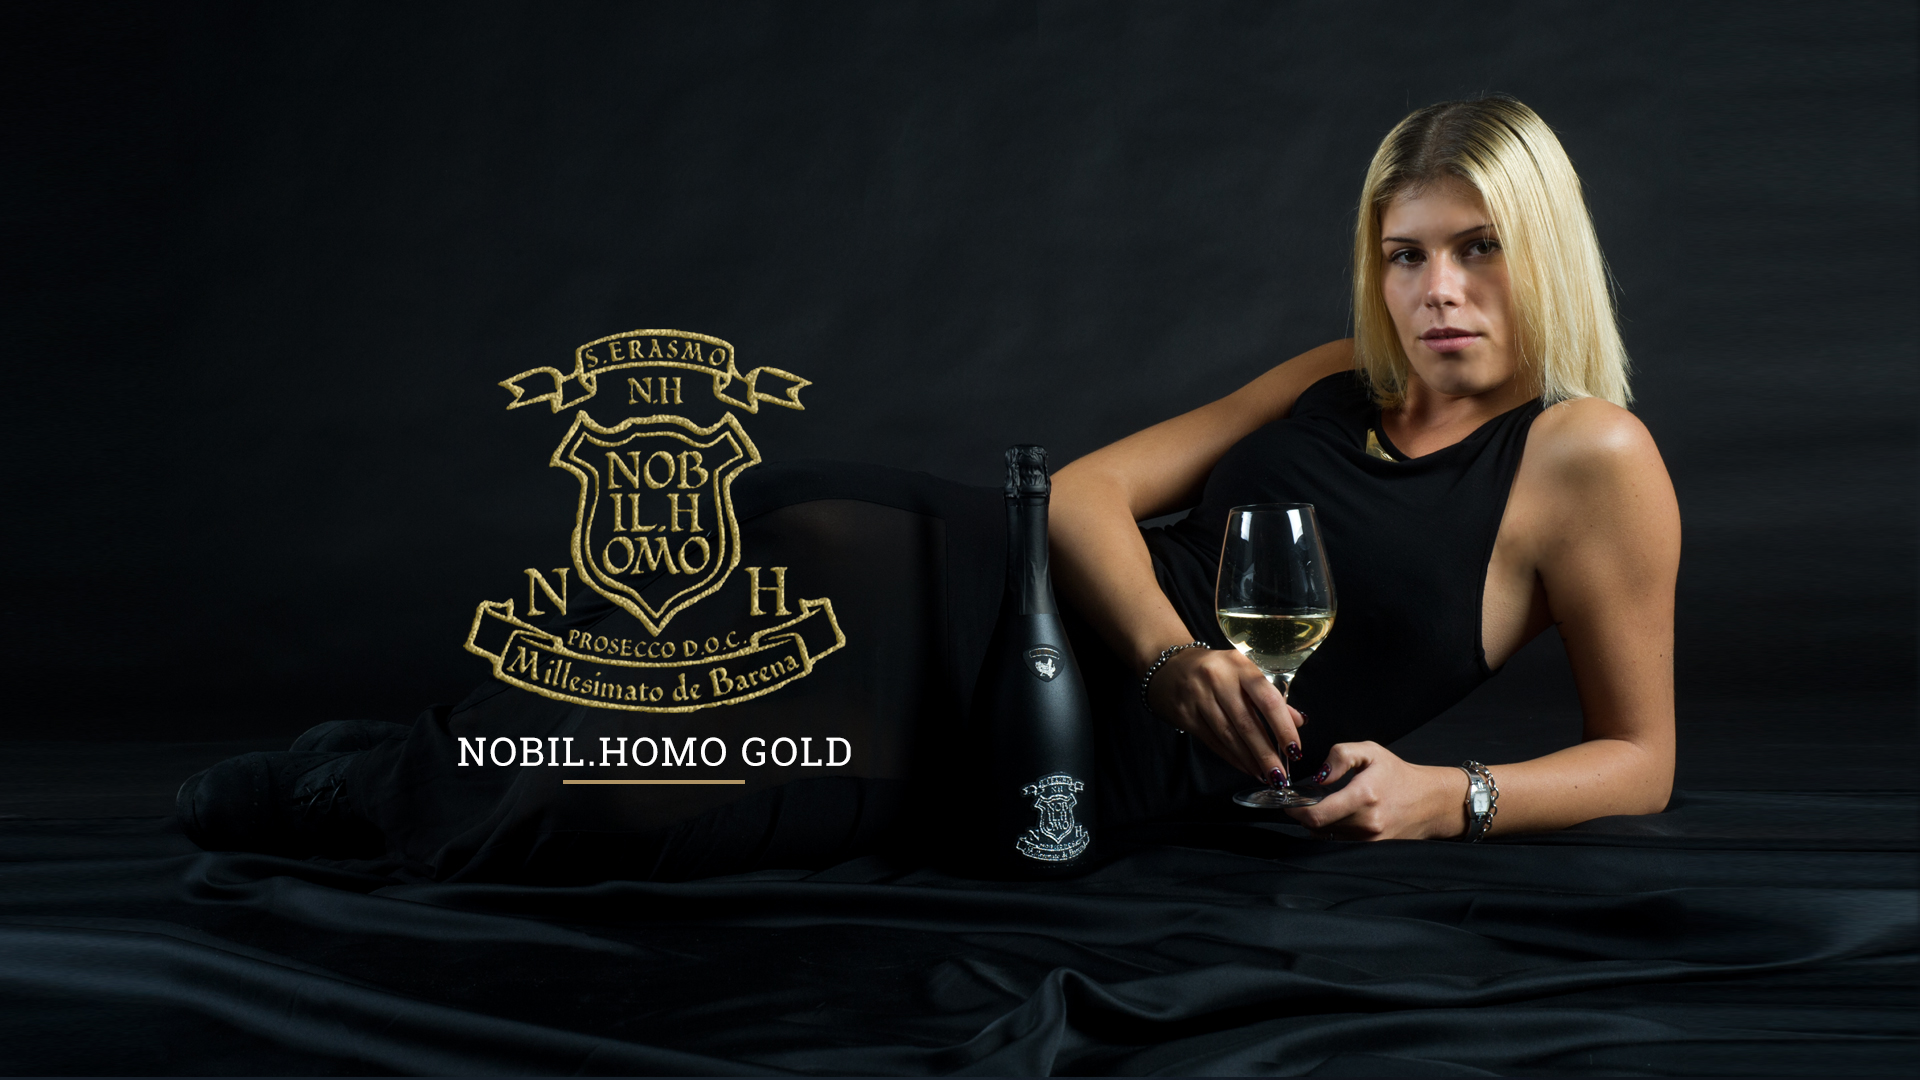 NOBIL.HOMO GOLD it